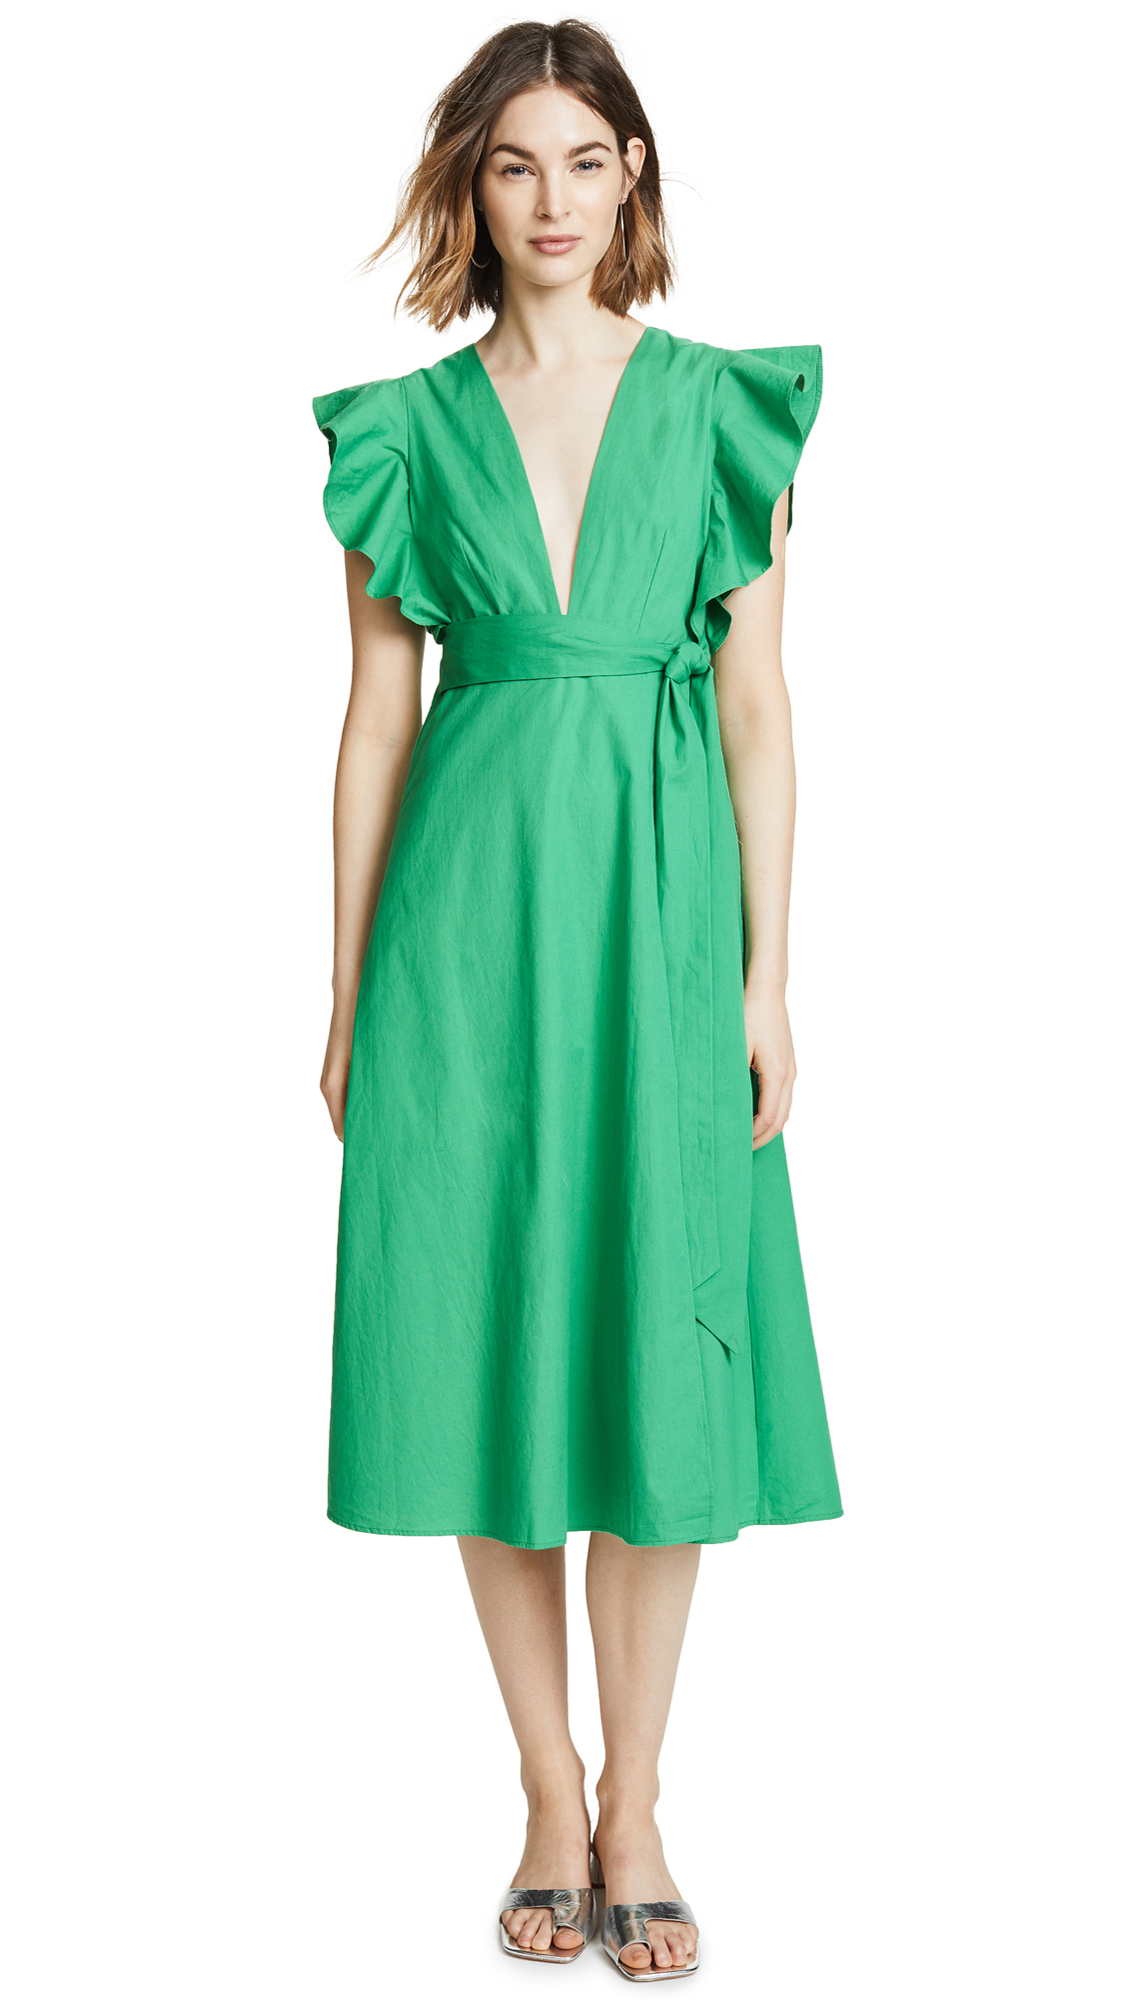 Valencia & Vine Molly Poplin Wrap Dress In Kelly Green